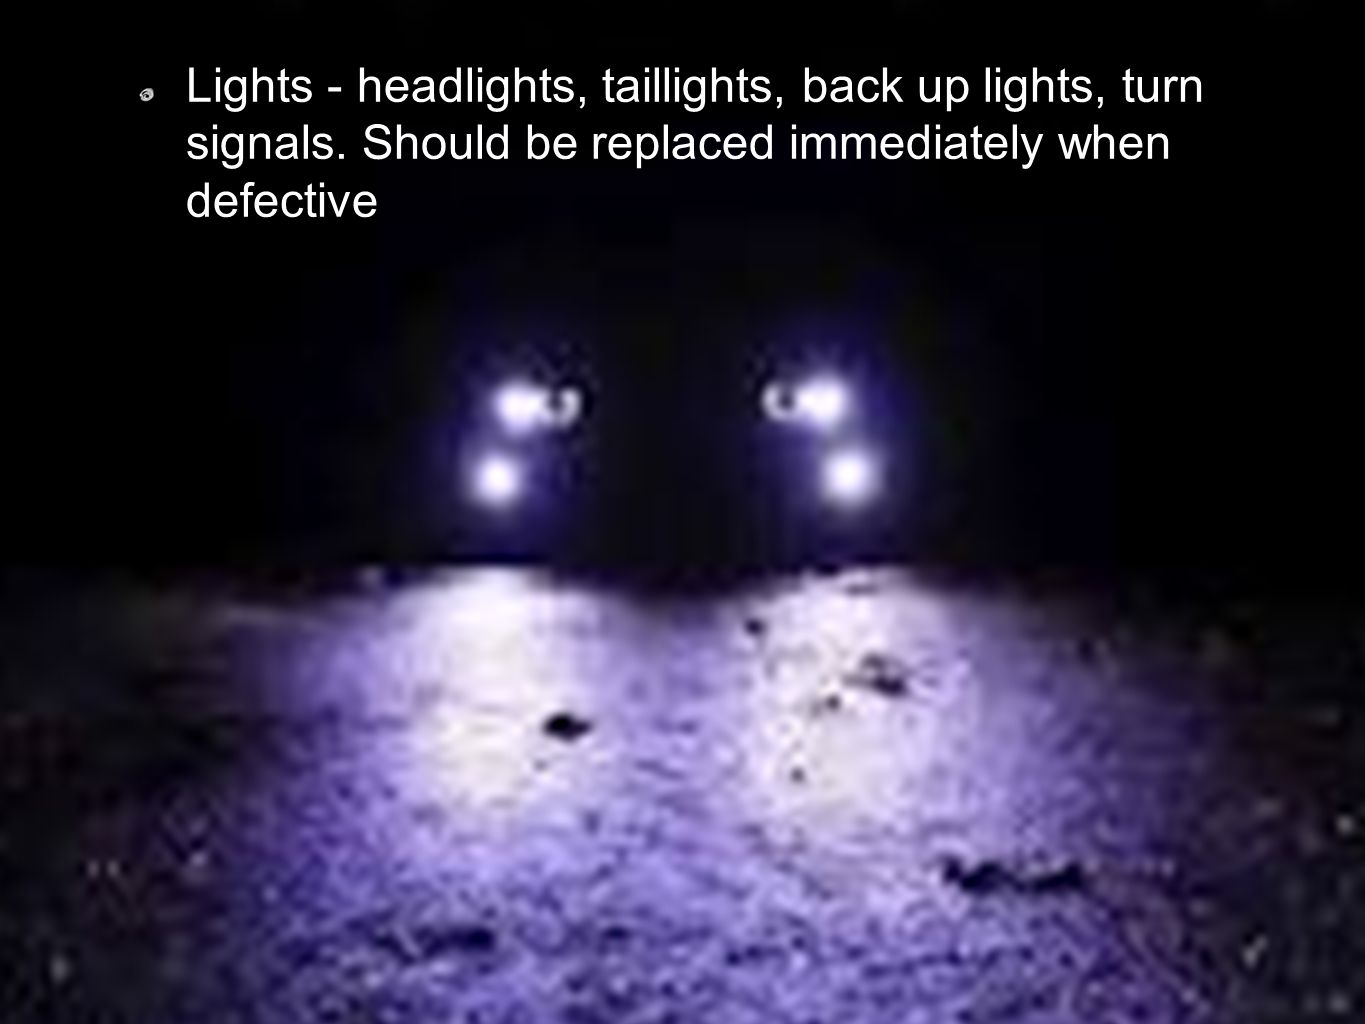 Lights - headlights, taillights, back up lights, turn signals